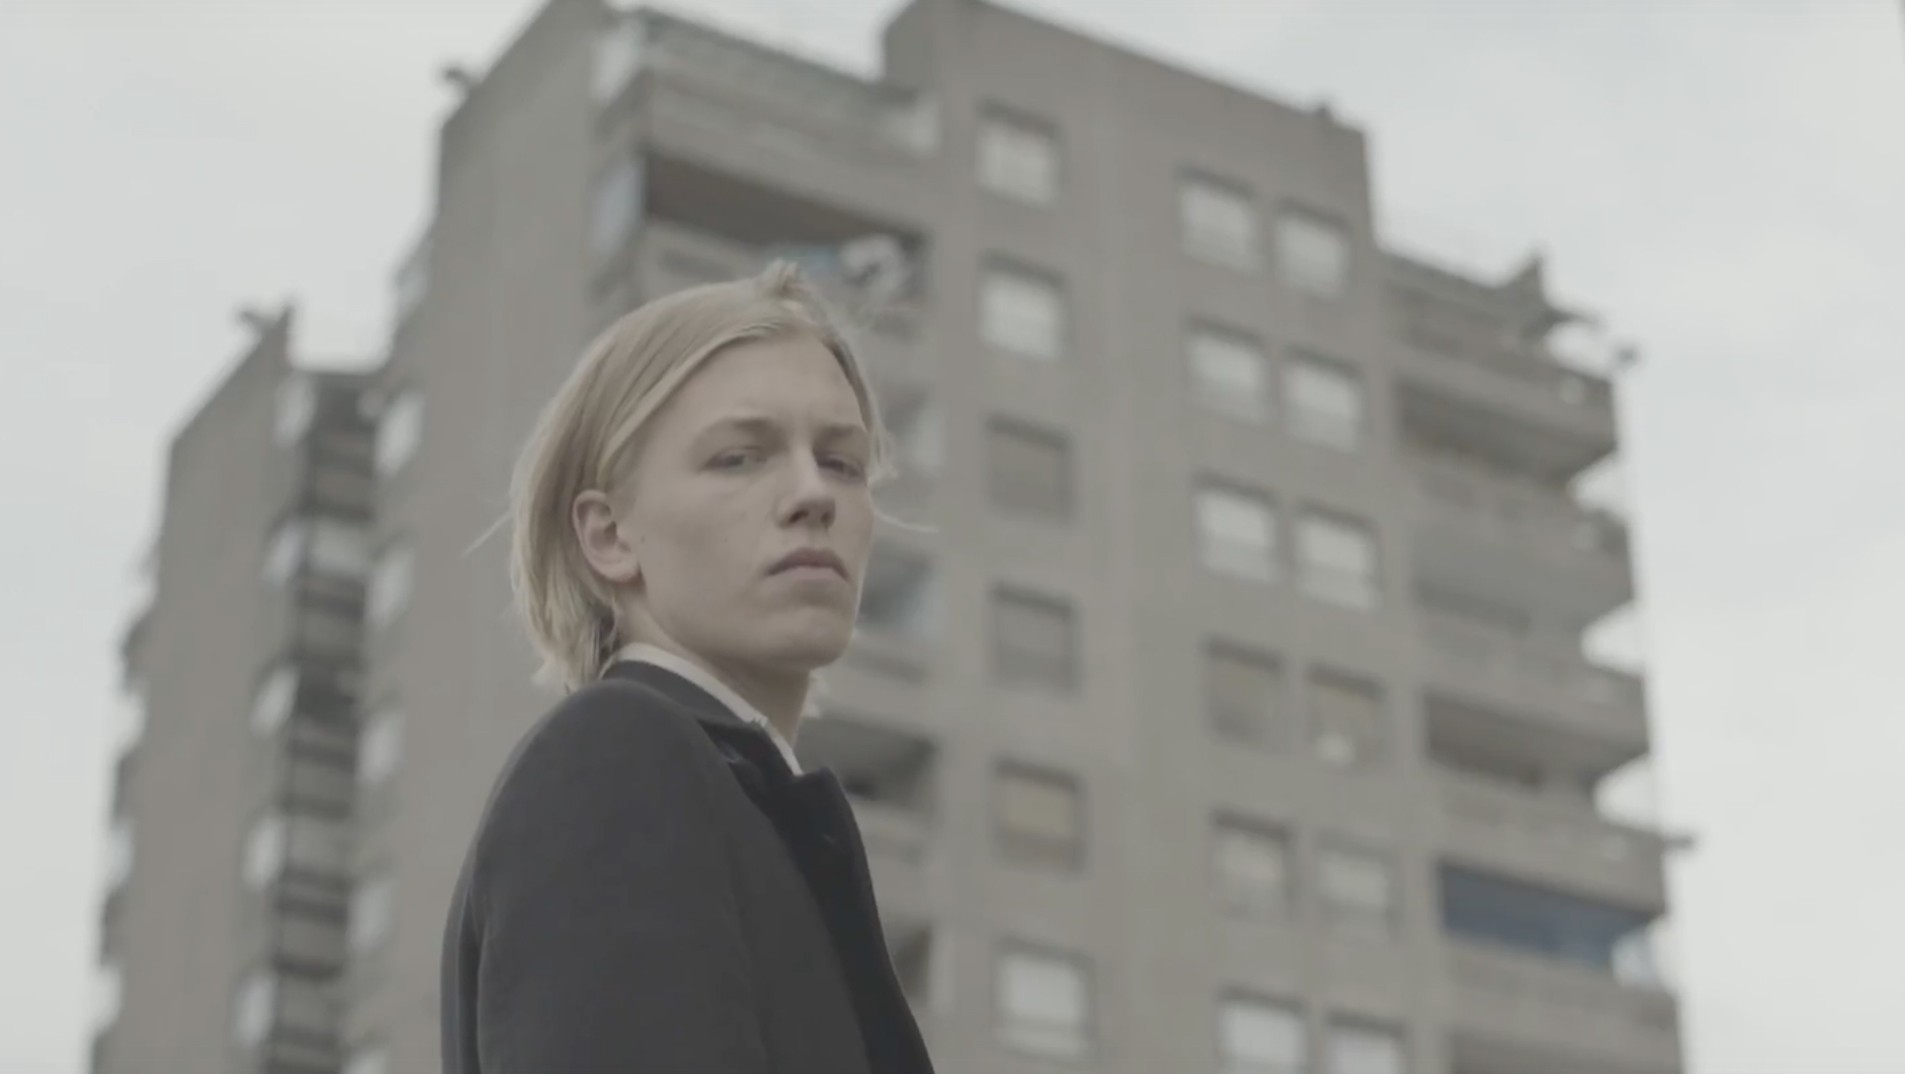 videopremiere: matija, song for celine